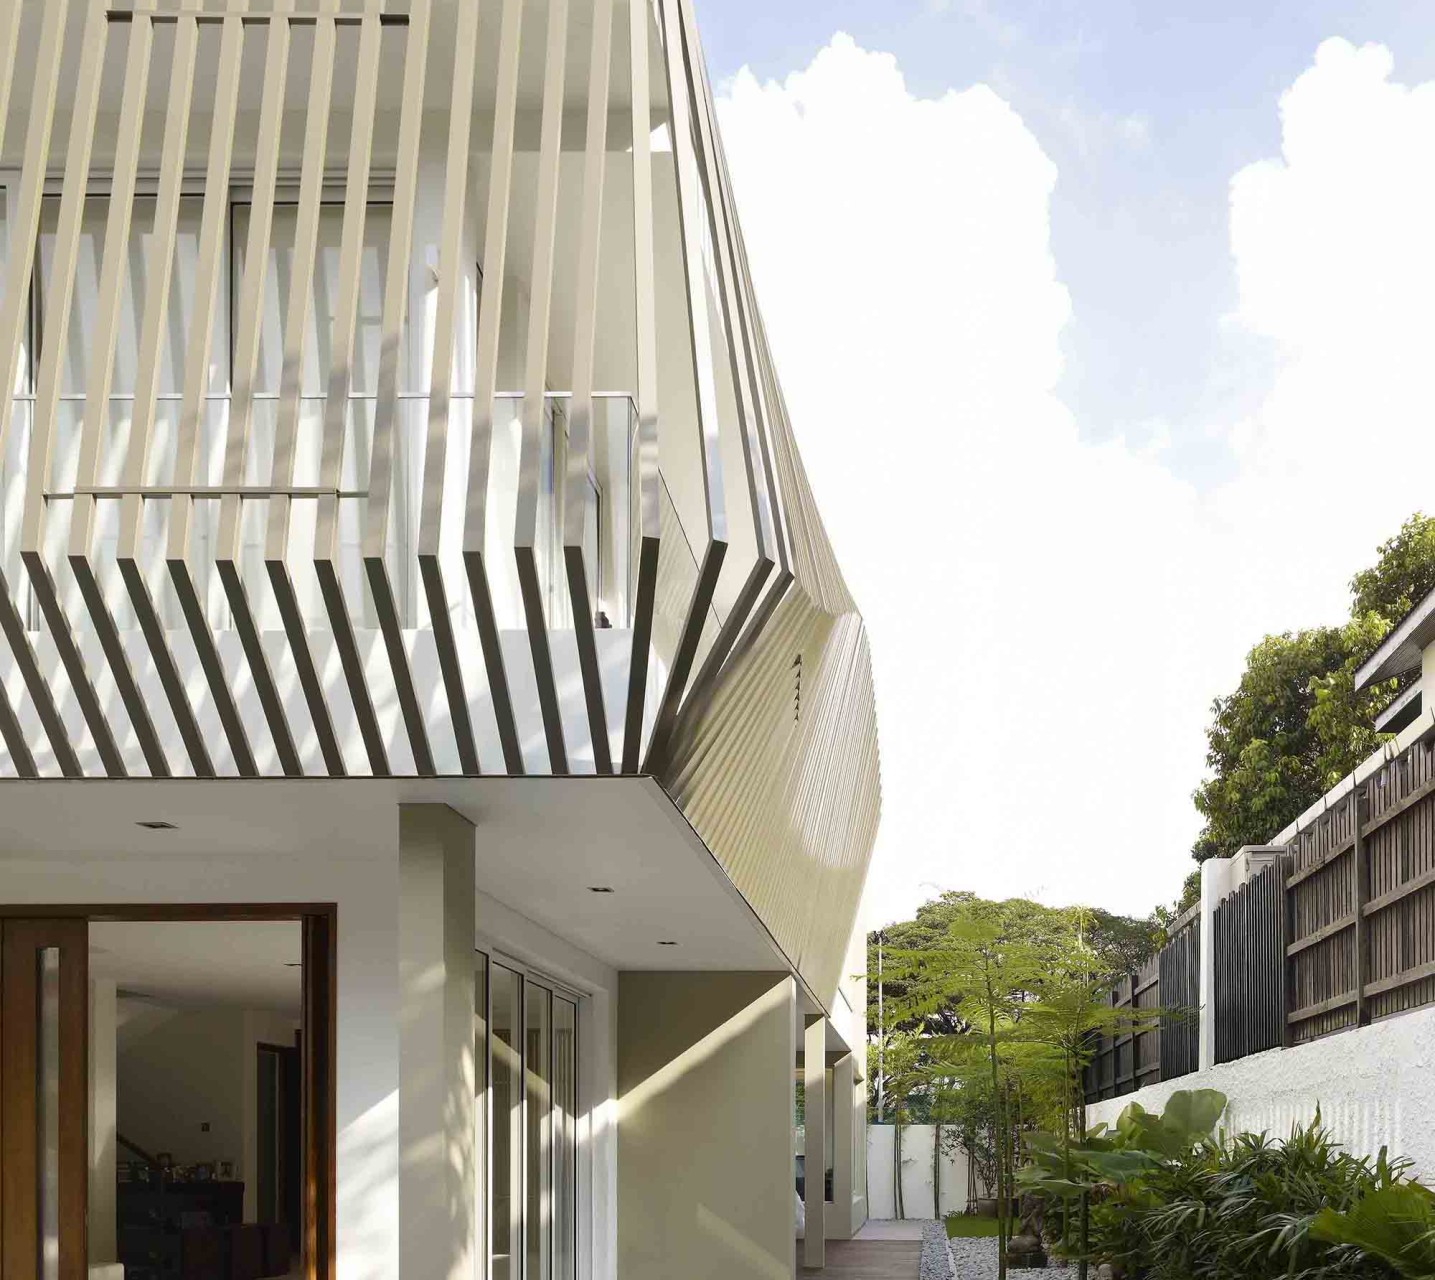 Design Firms In Singapore Architecture Firm Singapore Award Winning Architect Singapore